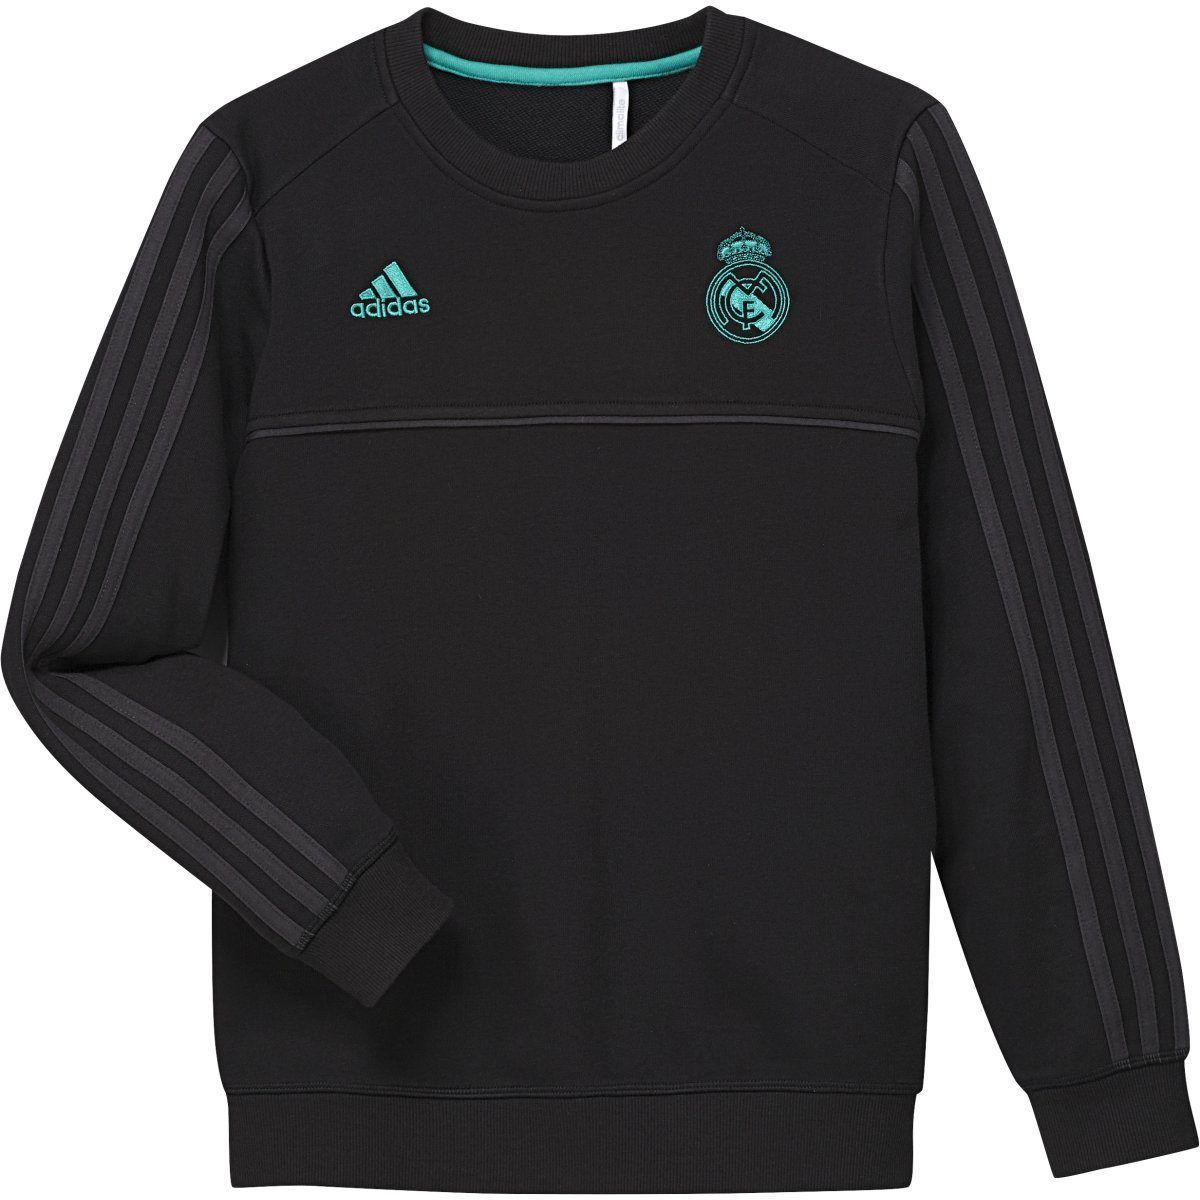 This sweatshirt forms part of the Real Madrid 2017 2018